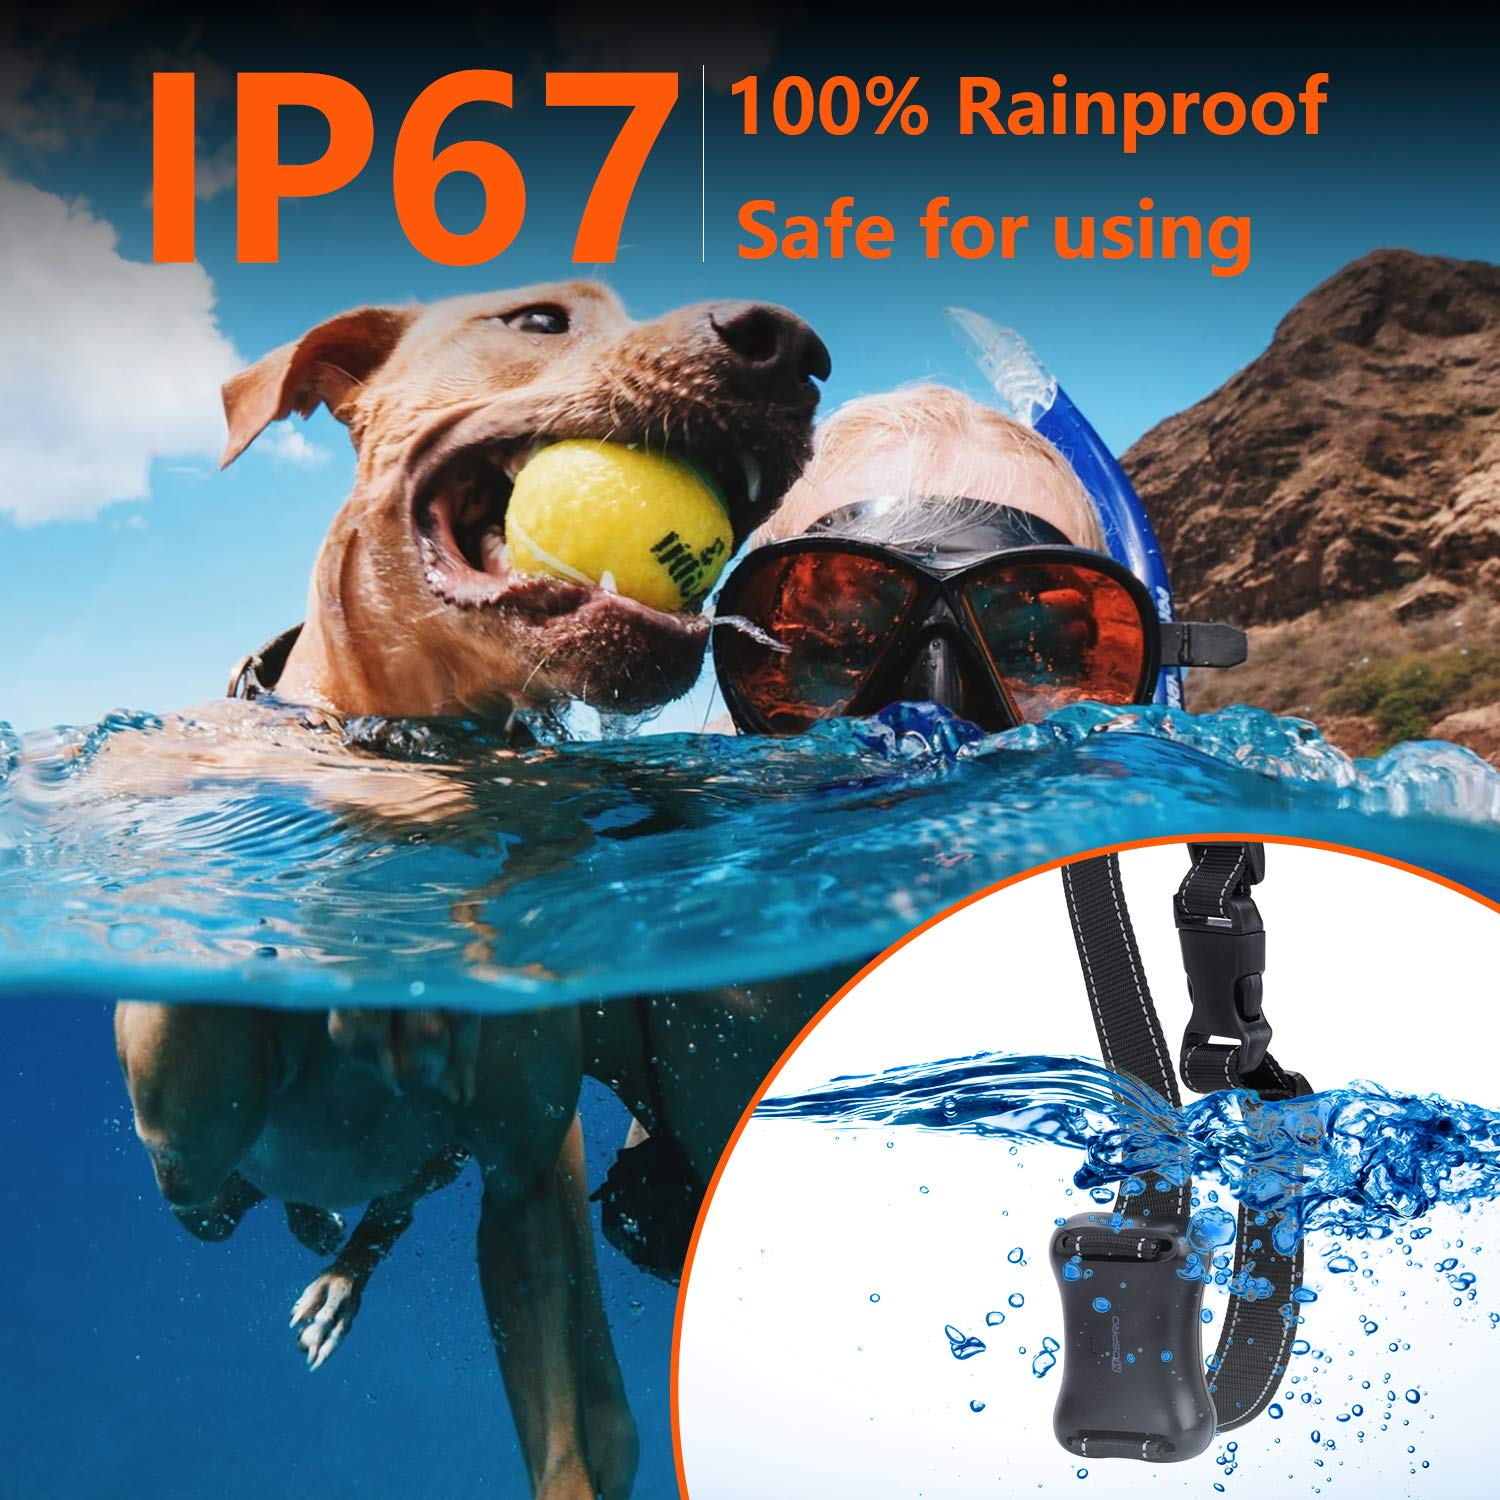 Shock Collar for Dogs - Dog Training Collar with Remote 1000Ft Rechargeable Rainproof Anti Bark E Collar,Beep Vibration Shock for Small Medium Large Dogs (2018 New) by MOSPRO (Image #5)